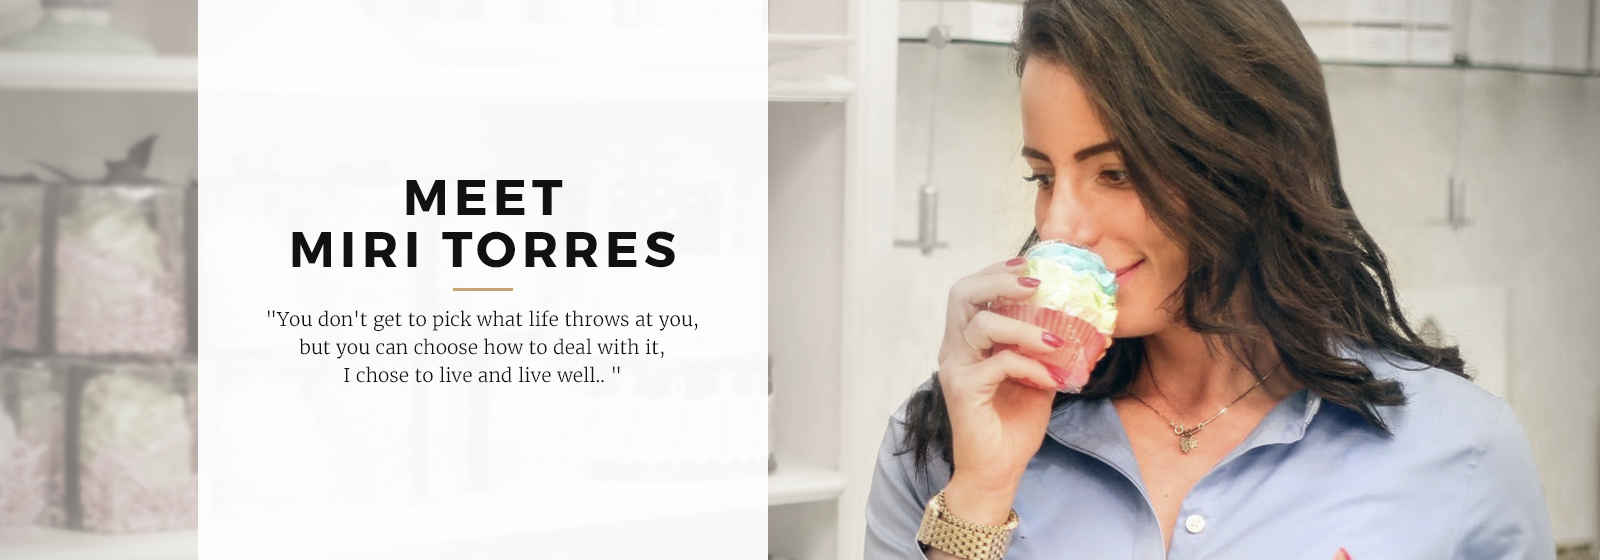 Meet Miri Torres. Quote: You don't get to pick what life throws at you, but you can choose how to deal with it, I chose to live and live well...